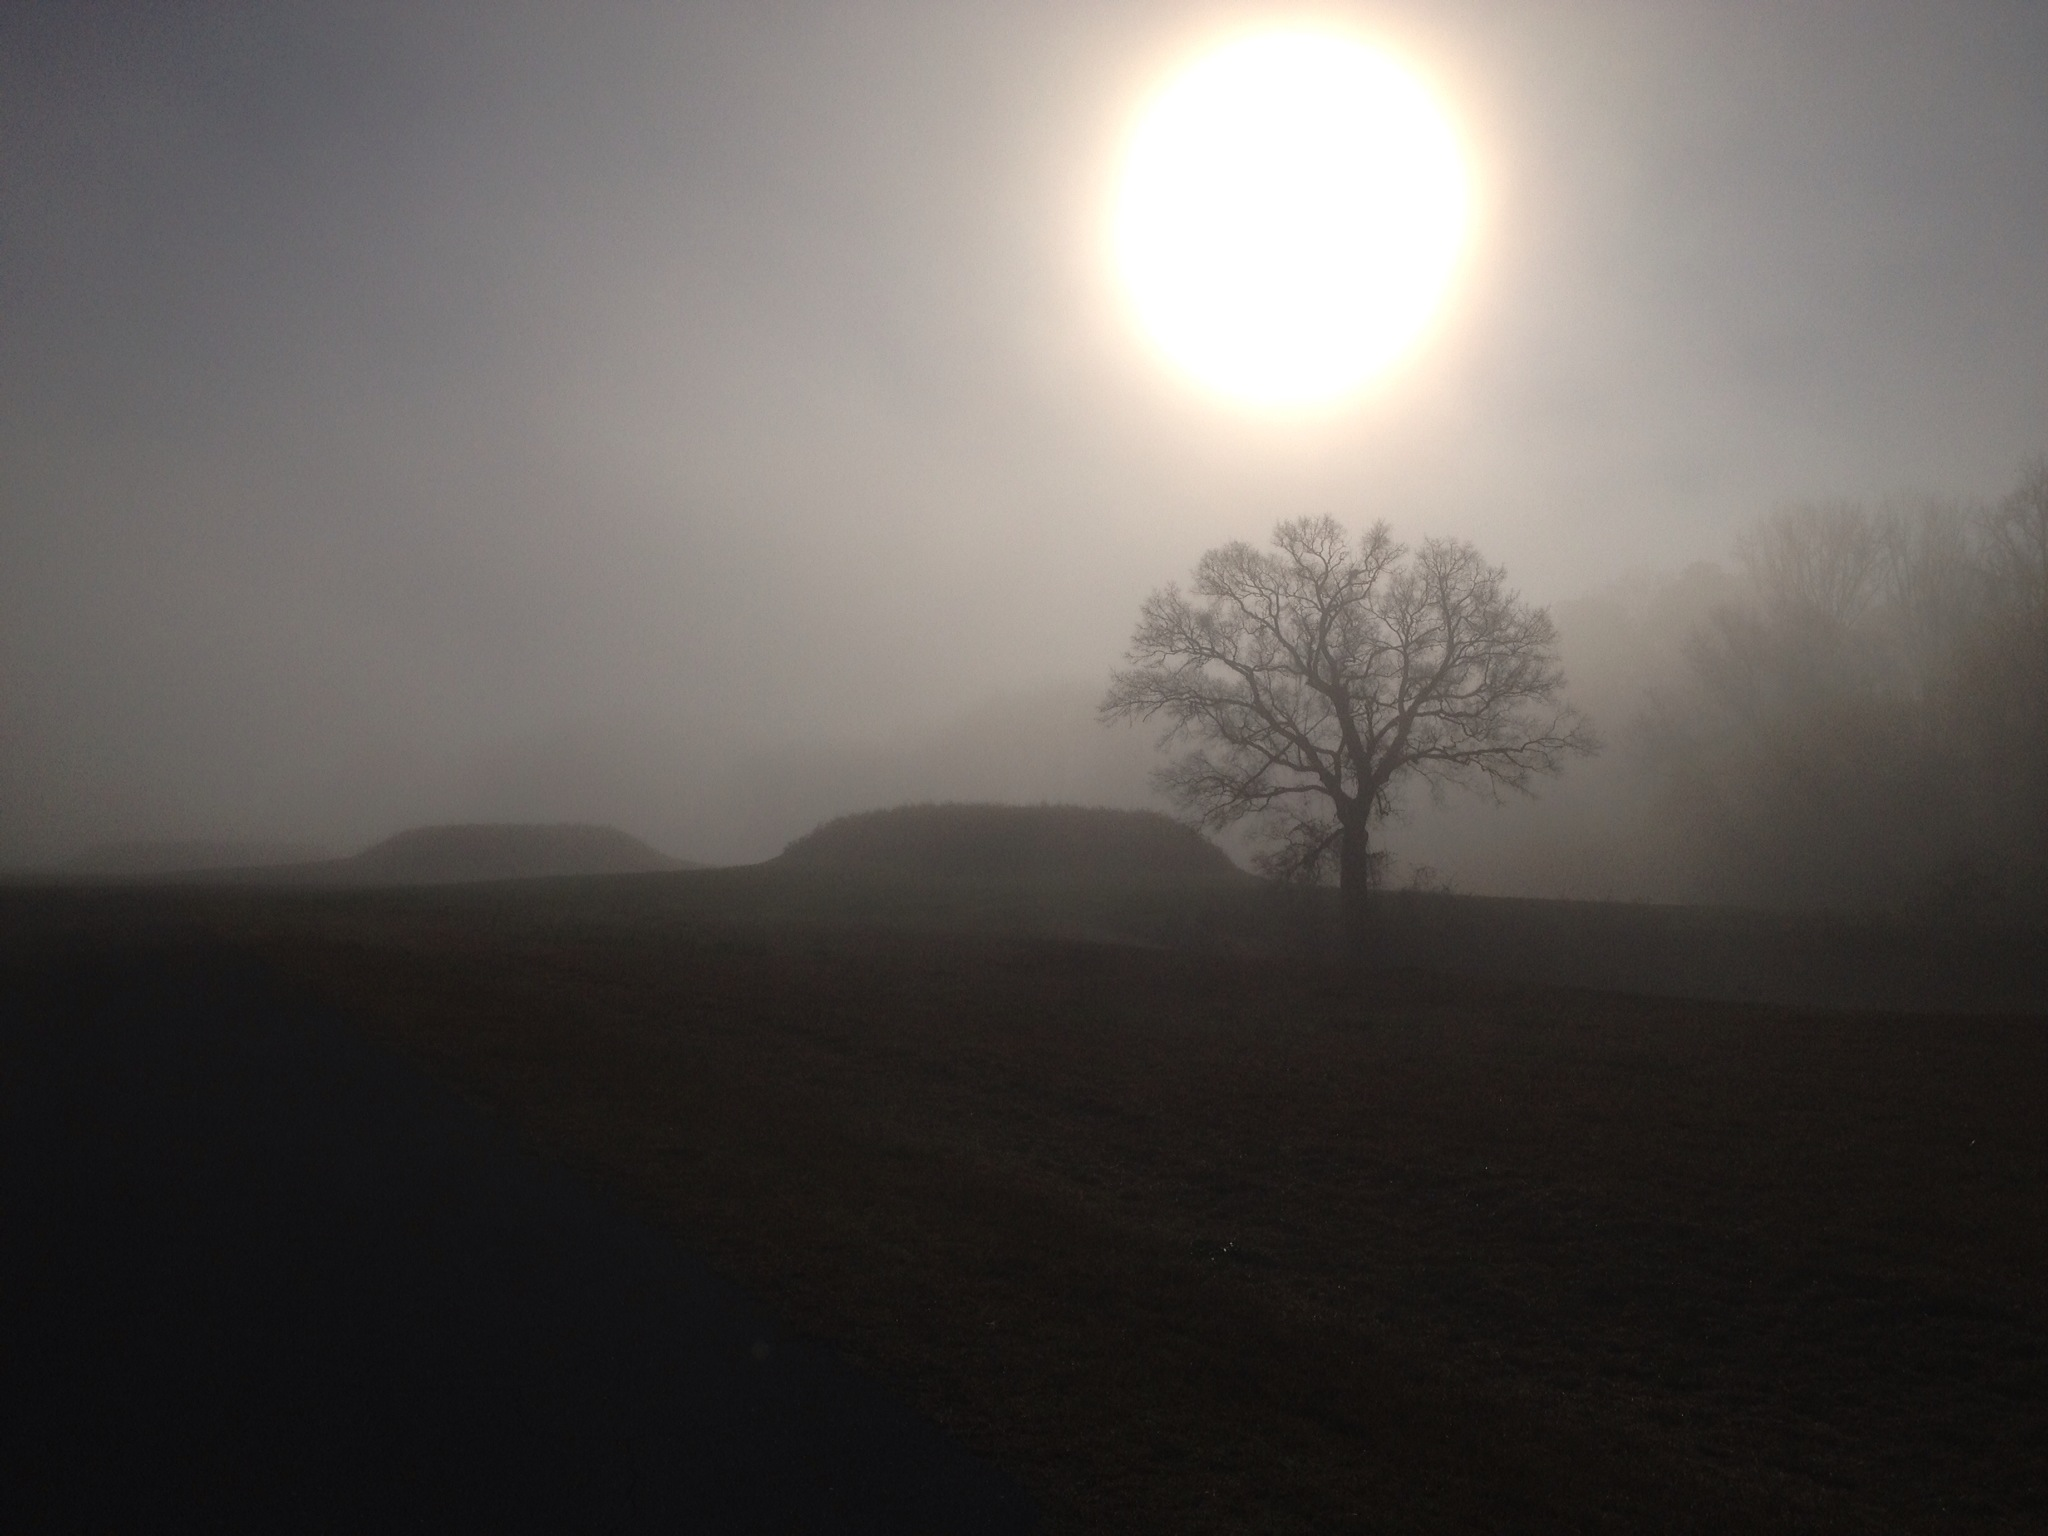 https://alabama-travel.s3.amazonaws.com/partners-uploads/photo/image/57869e624771c955d40000b9/moundville_on_a_cold_winter_morning_med_res.jpg